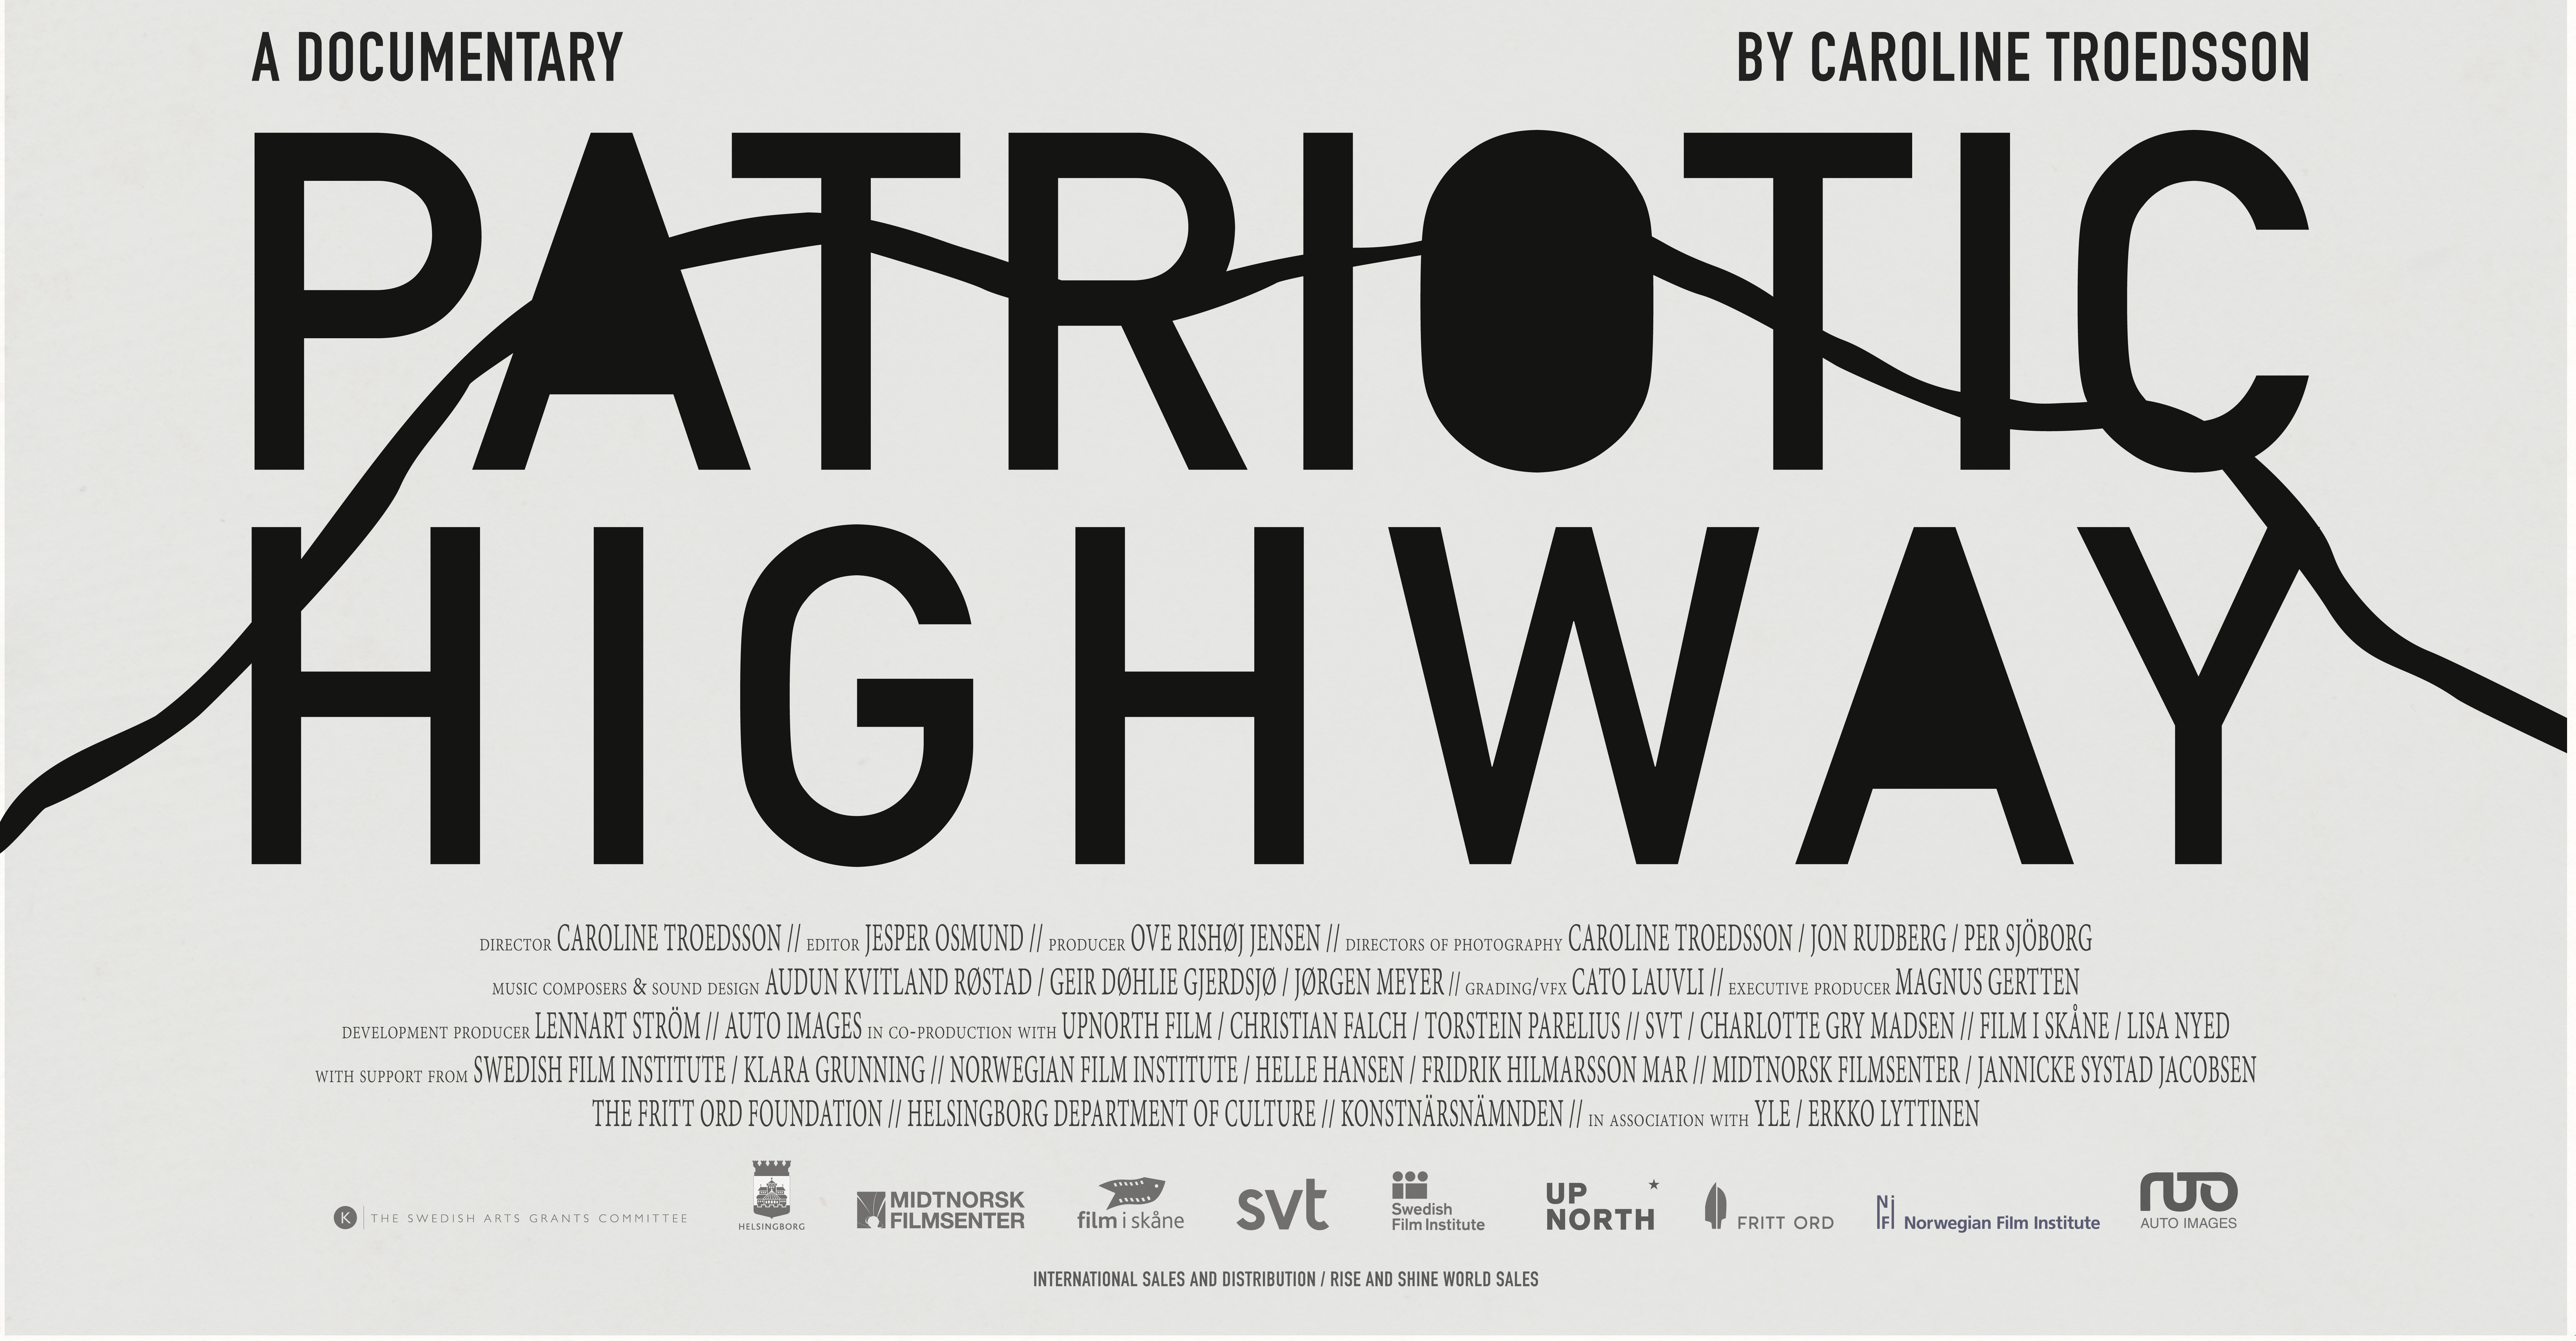 PatrioticHighwayNameDesignCredits.jpg